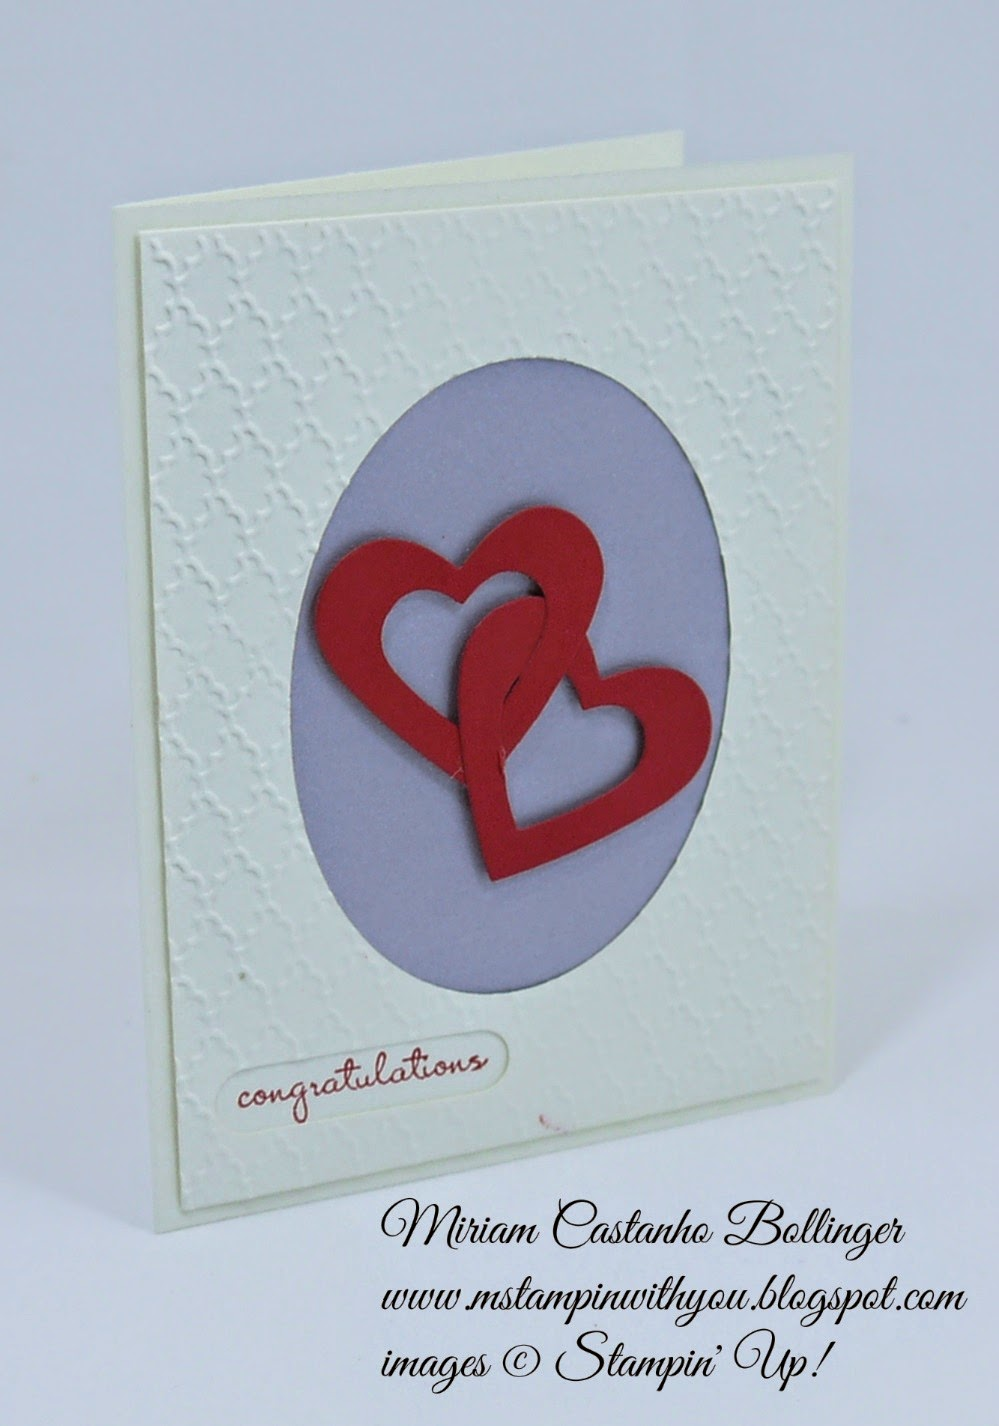 Wedding Card, Miriam Castanho Bollinger, #mstampinwithyou, stampin up, demonstrator, fancy folder, heart collection framelit, silver cardstock, su